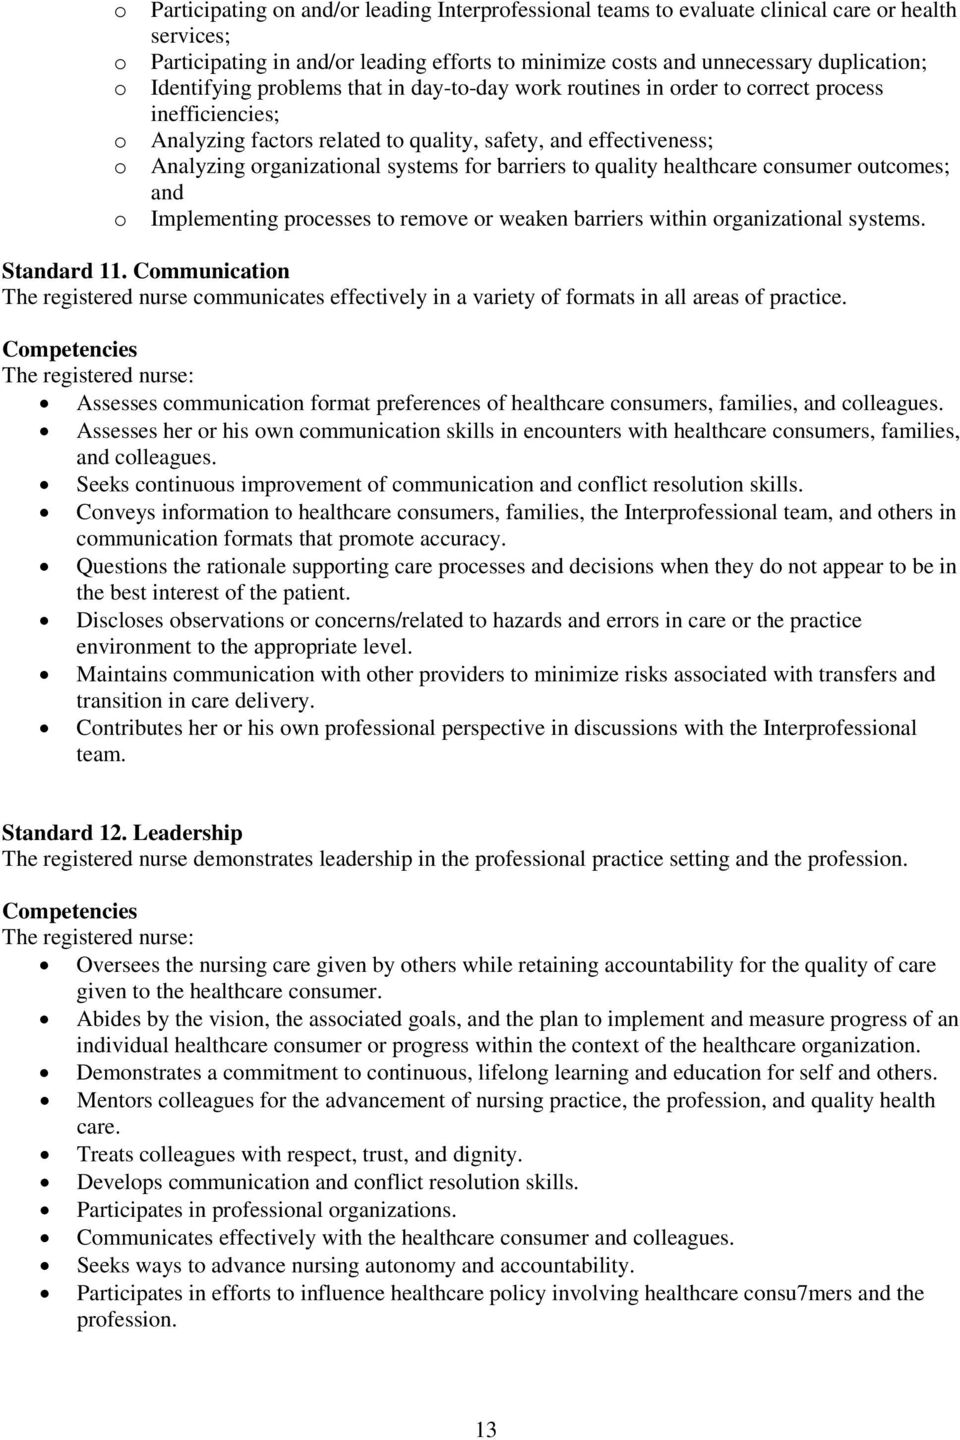 organizational systems for barriers to quality healthcare consumer outcomes; and Implementing processes to remove or weaken barriers within organizational systems. Standard 11.